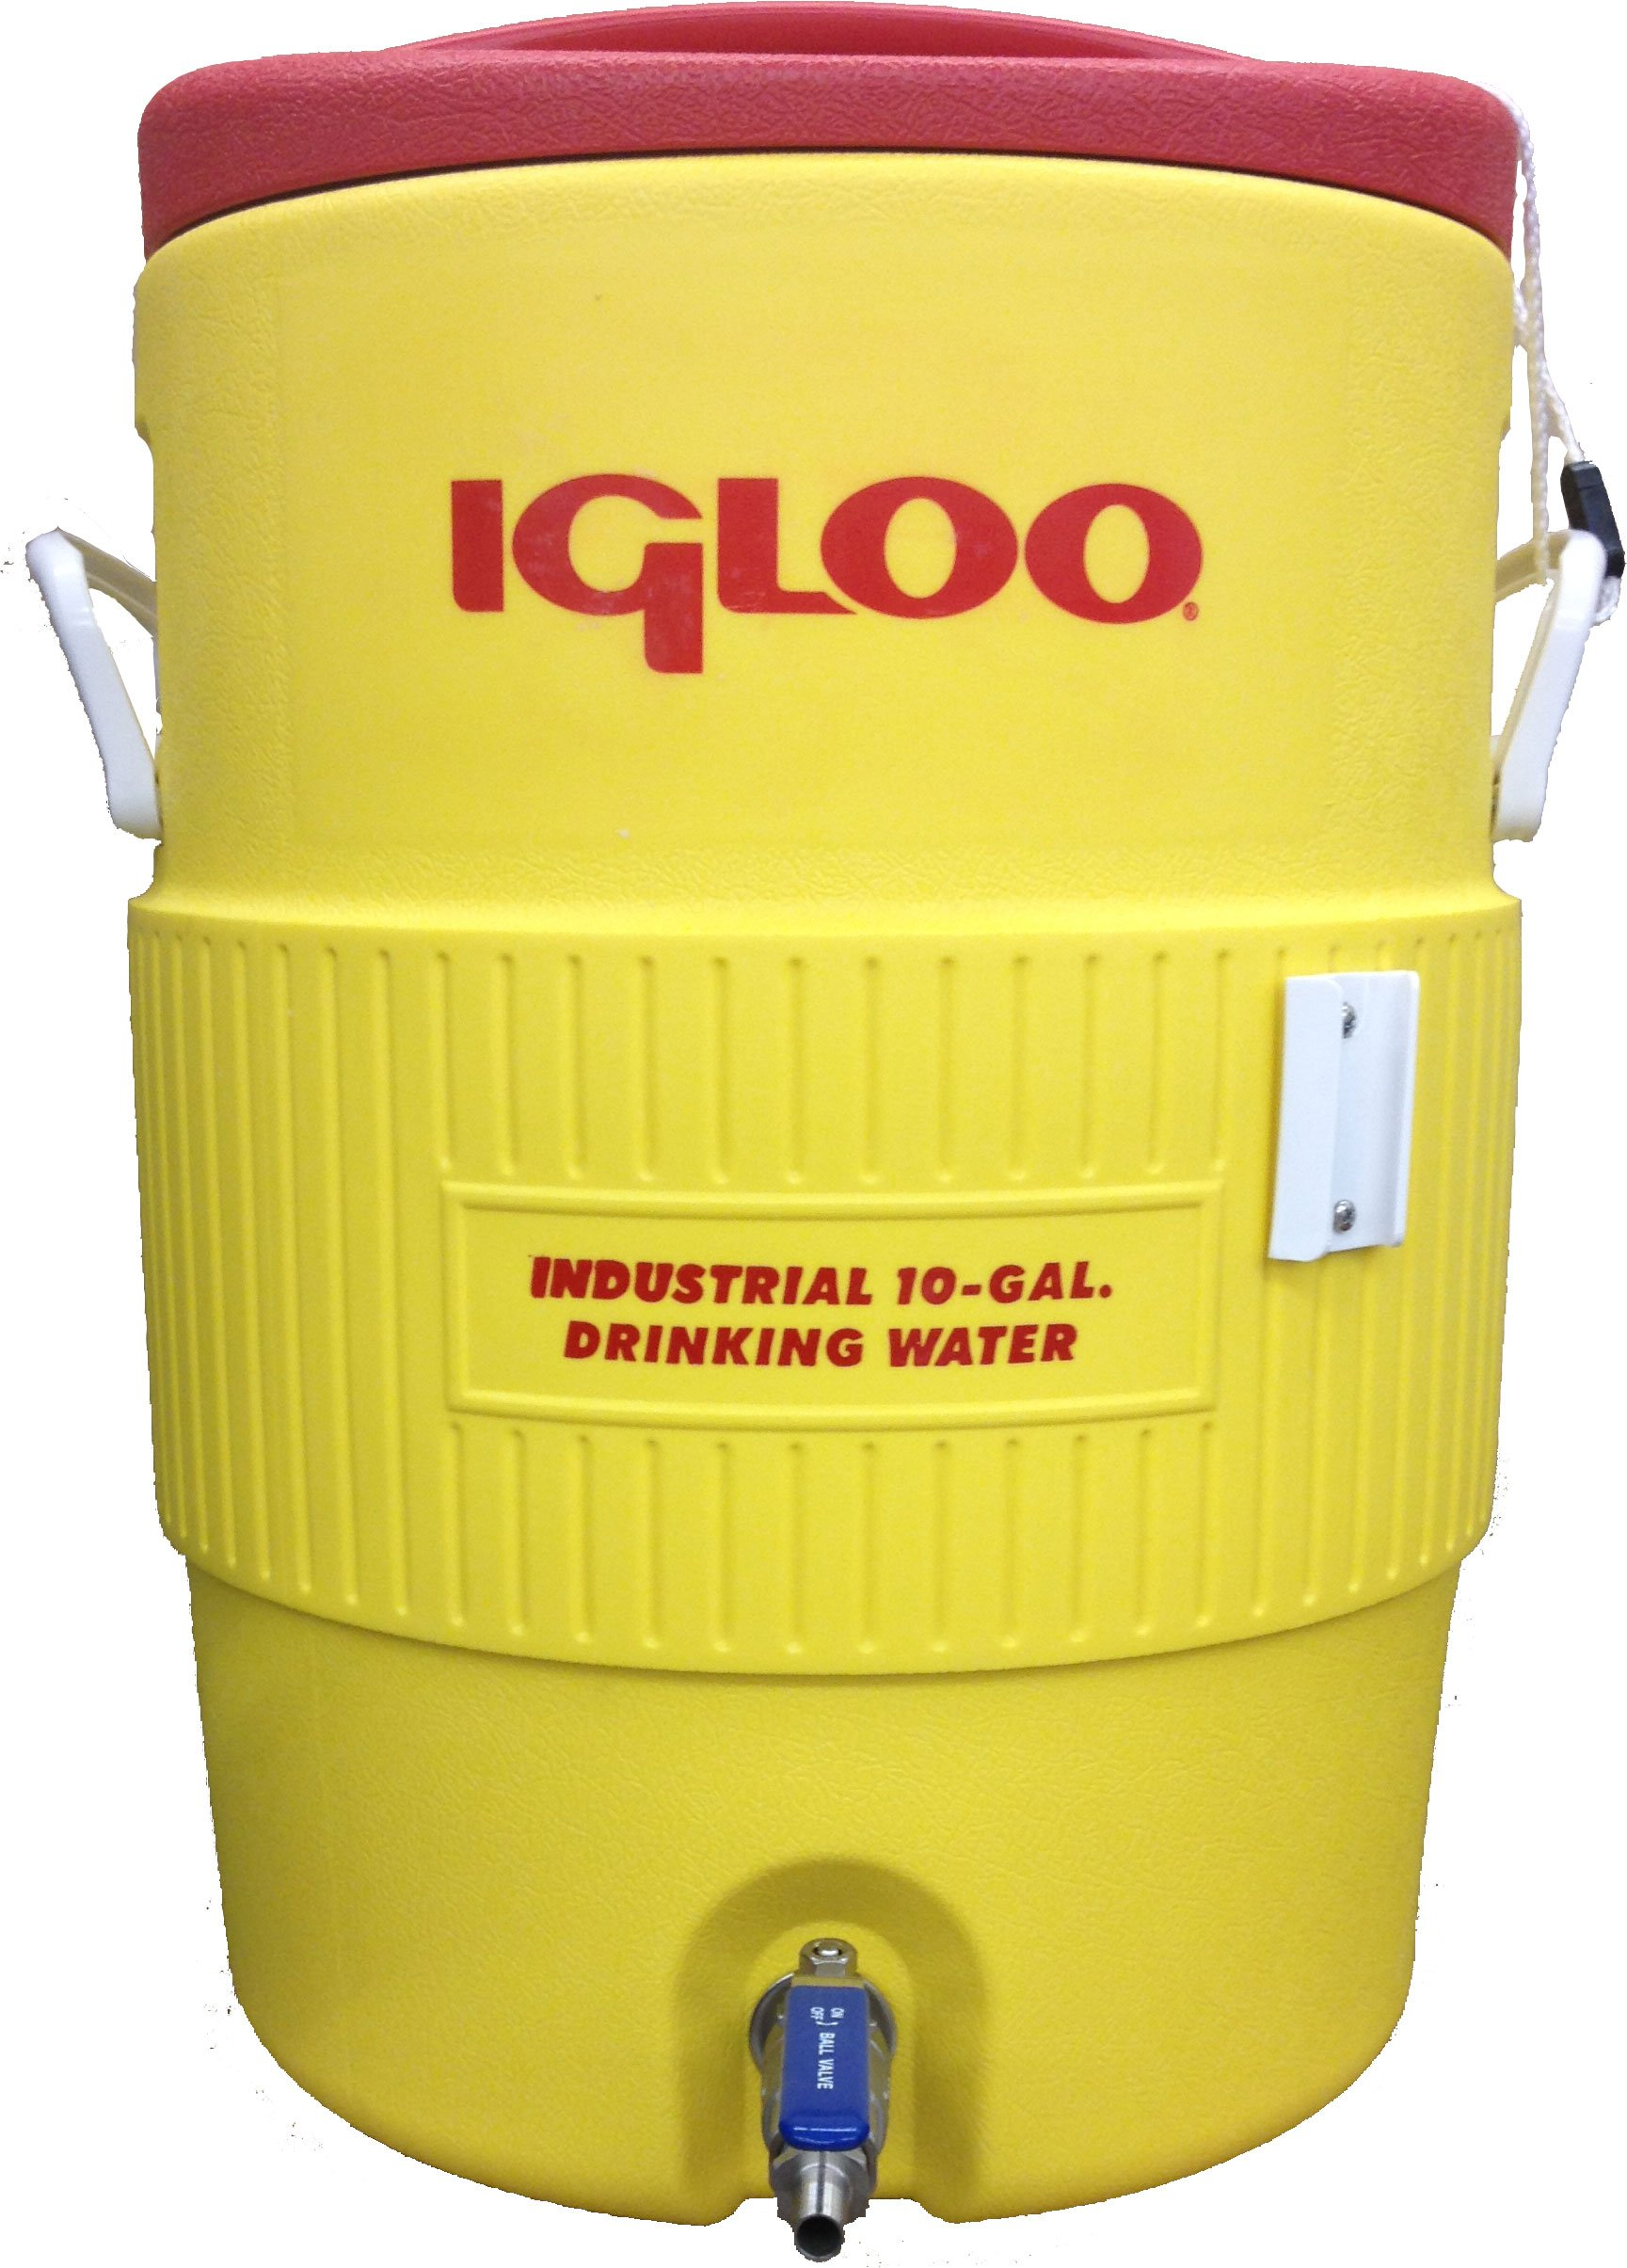 Quick Fit Hot Liquor Tank with Stainless Steel Ball Valve, 10 gallon